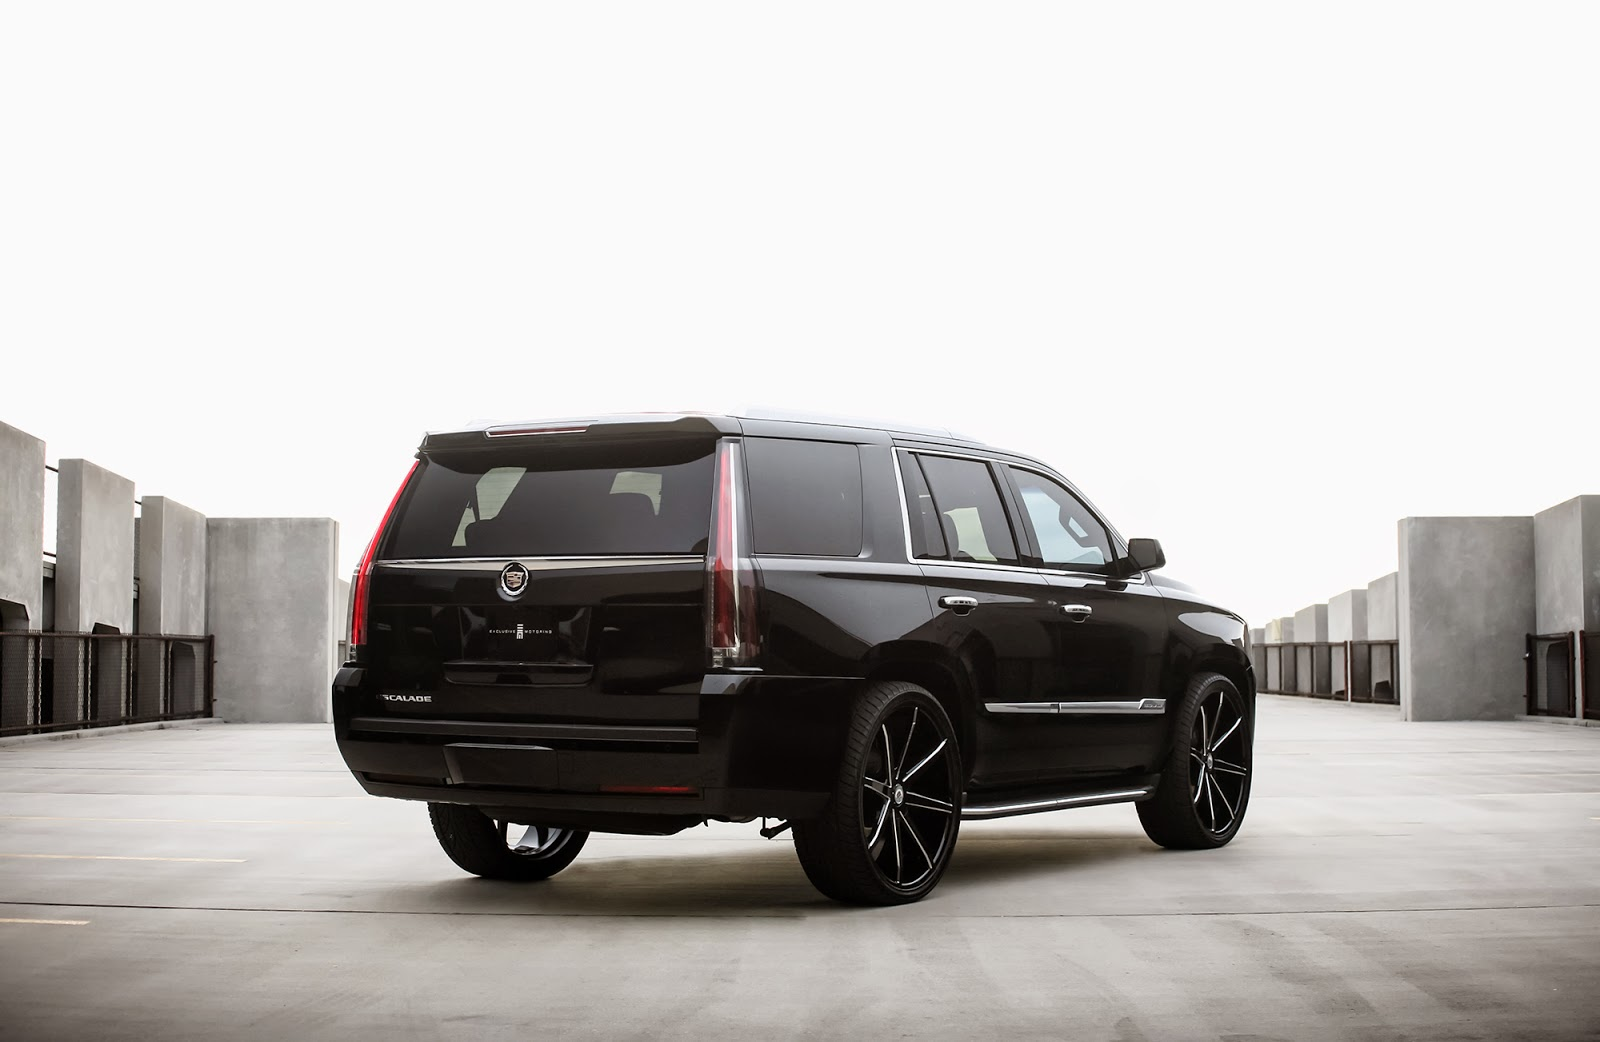 Cadillac 2015 escalade opening a new generation of luxury SUVs #12